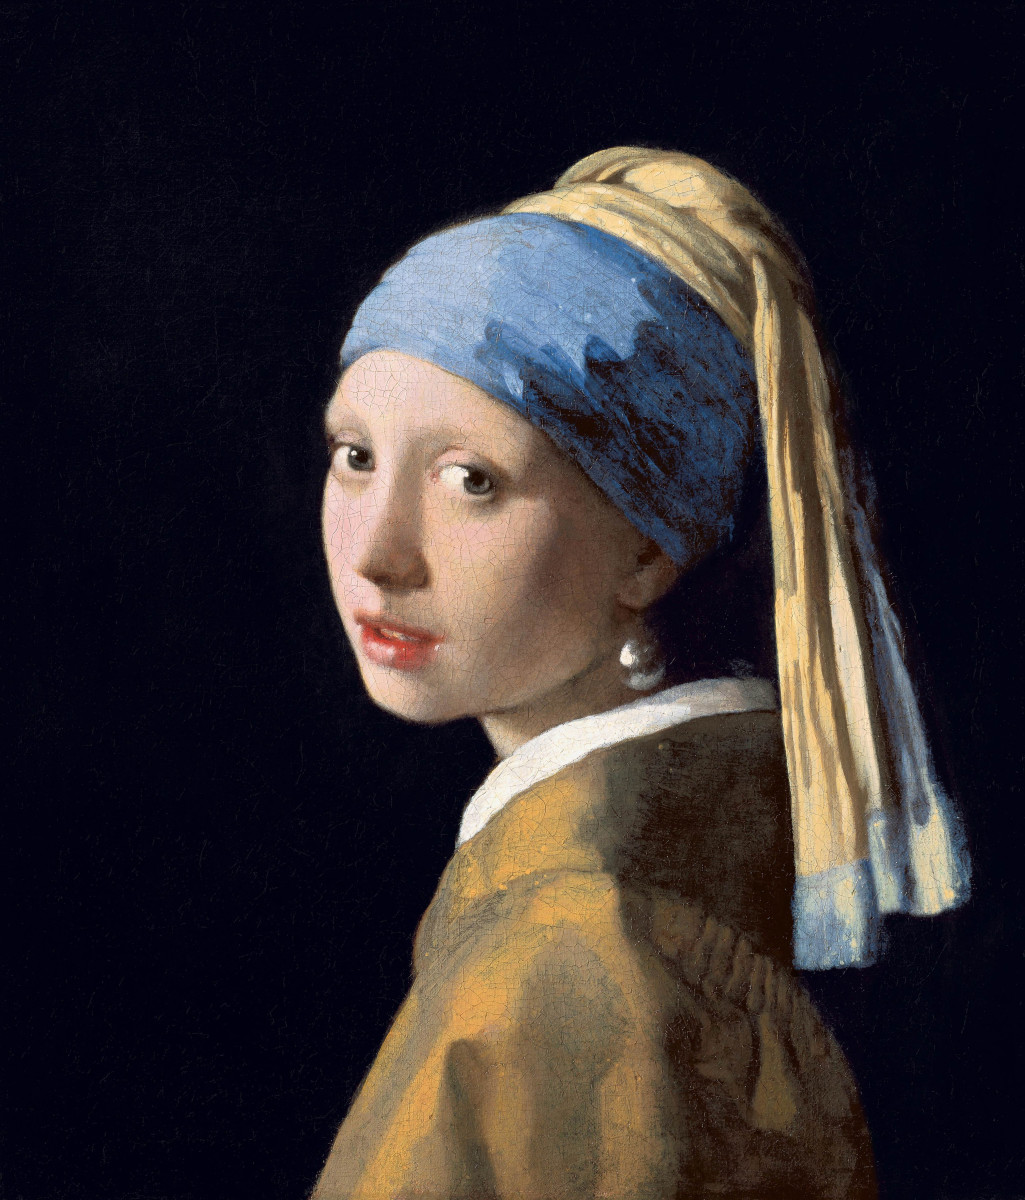 17th century Dutch painter Johannes Vermeer painted her daughter Maria wearing blue headscarf and pearl earrings, using oil and canvas.